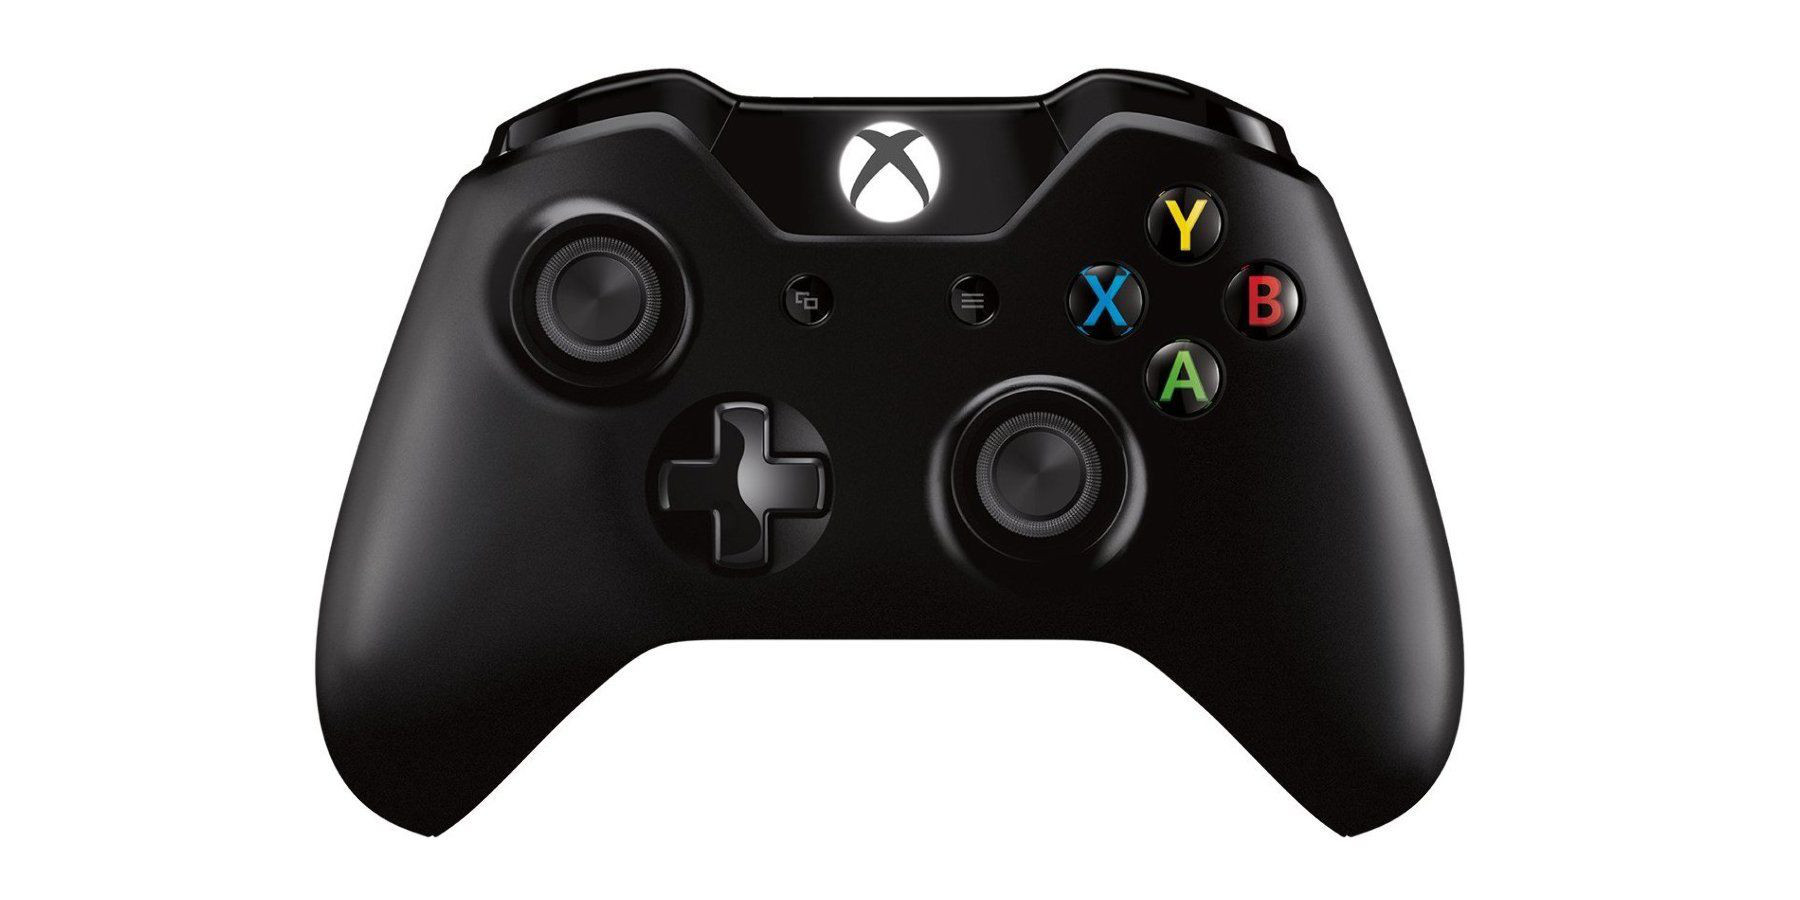 Grab an extra Microsoft Xbox Wireless Controller for just $37.50 today (Reg. $50+)